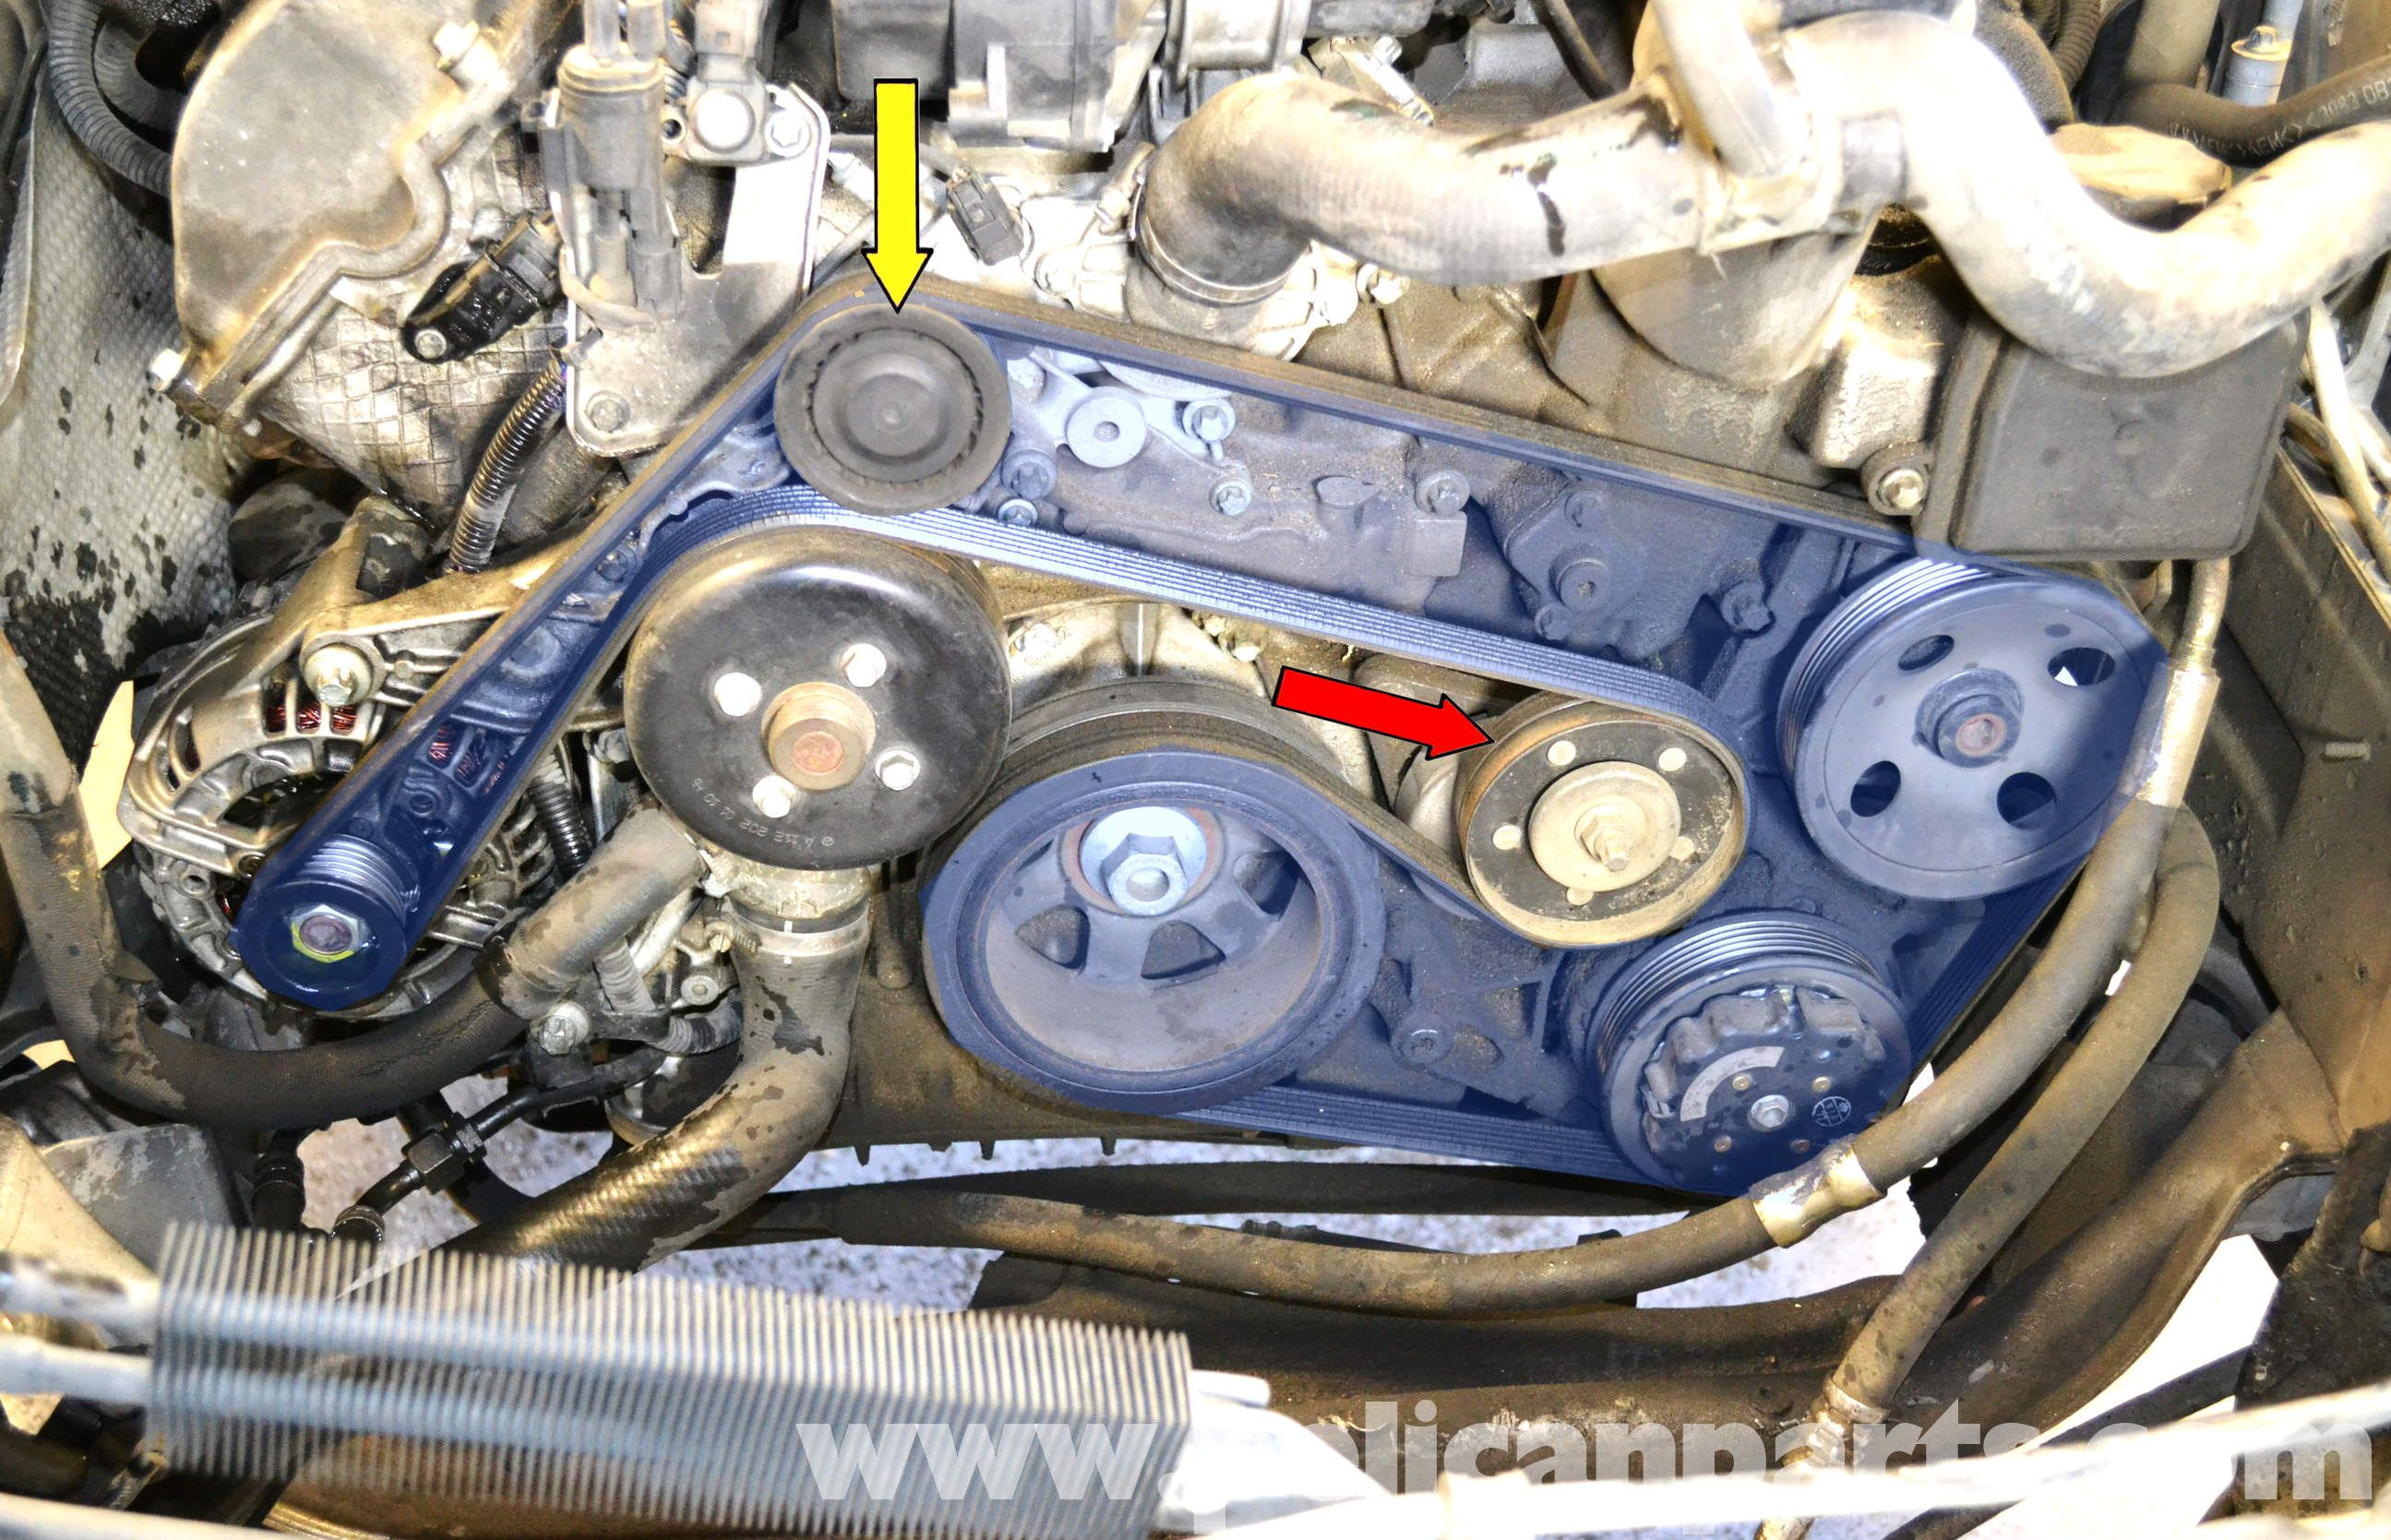 15724fbdf7b7a7e39a68cd44b4e5ec9c mercedes benz w203 water pump replacement (2001 2007) c230, c280 2004 Mercedes C230 Kompressor Interior at bakdesigns.co